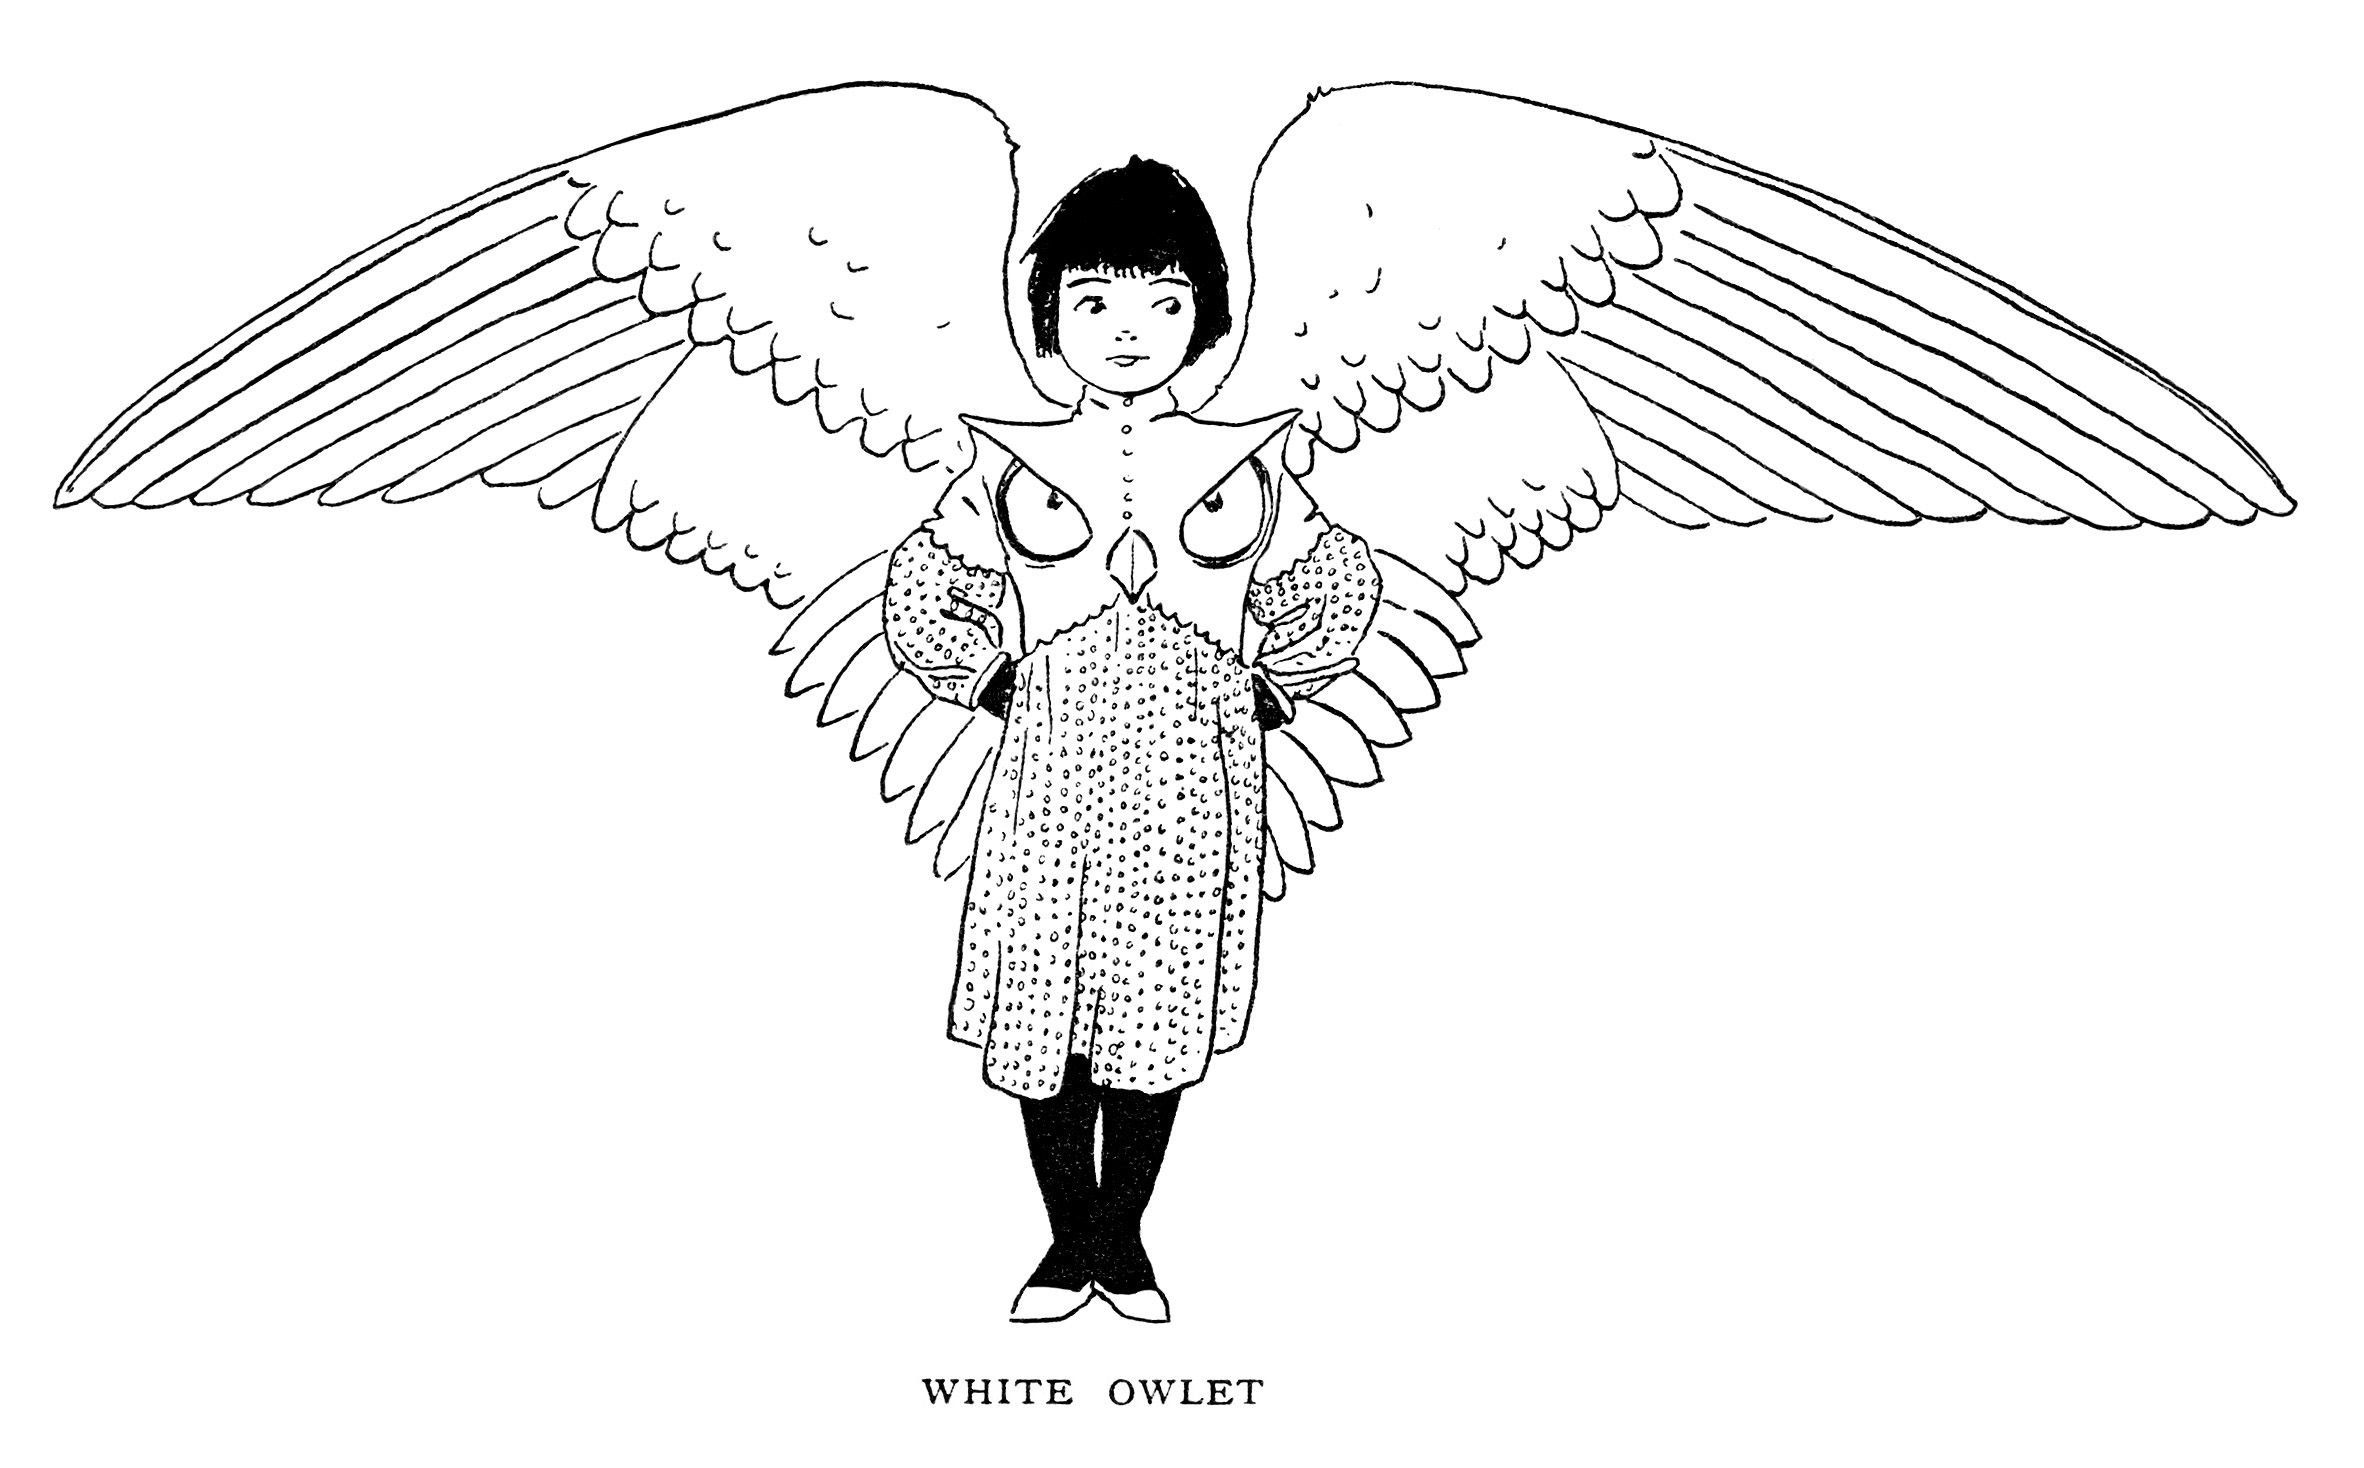 Free vintage storybook character white owlet clip art illustration